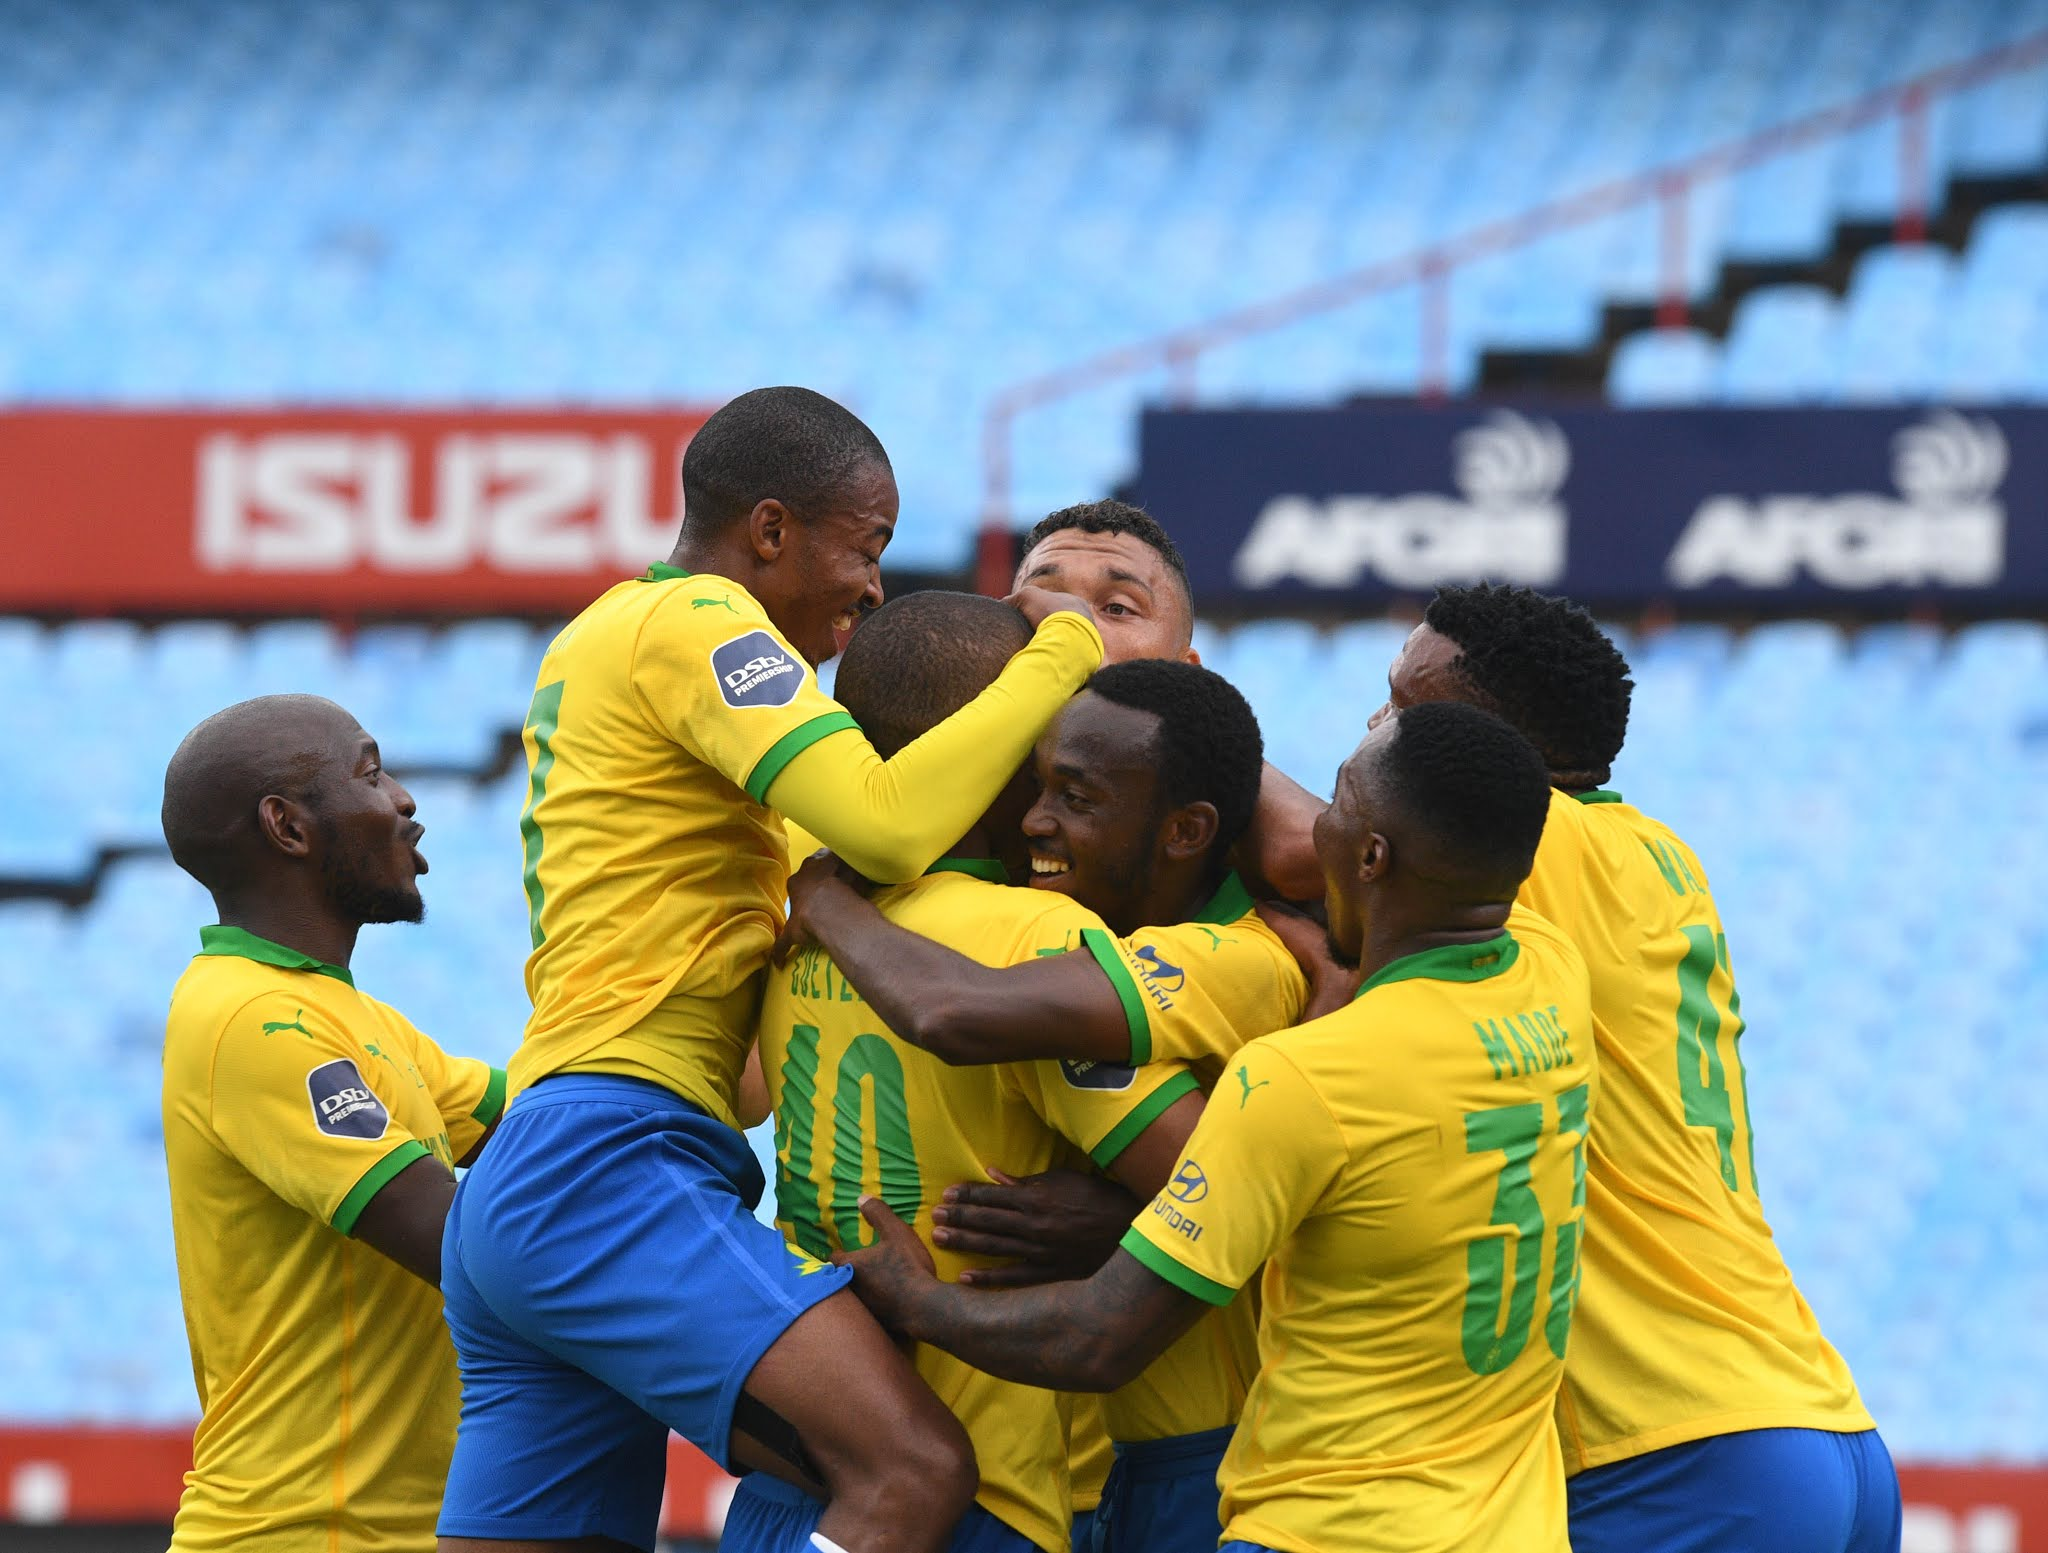 Mamelodi Sundowns celebrate their win over Orlando Pirates